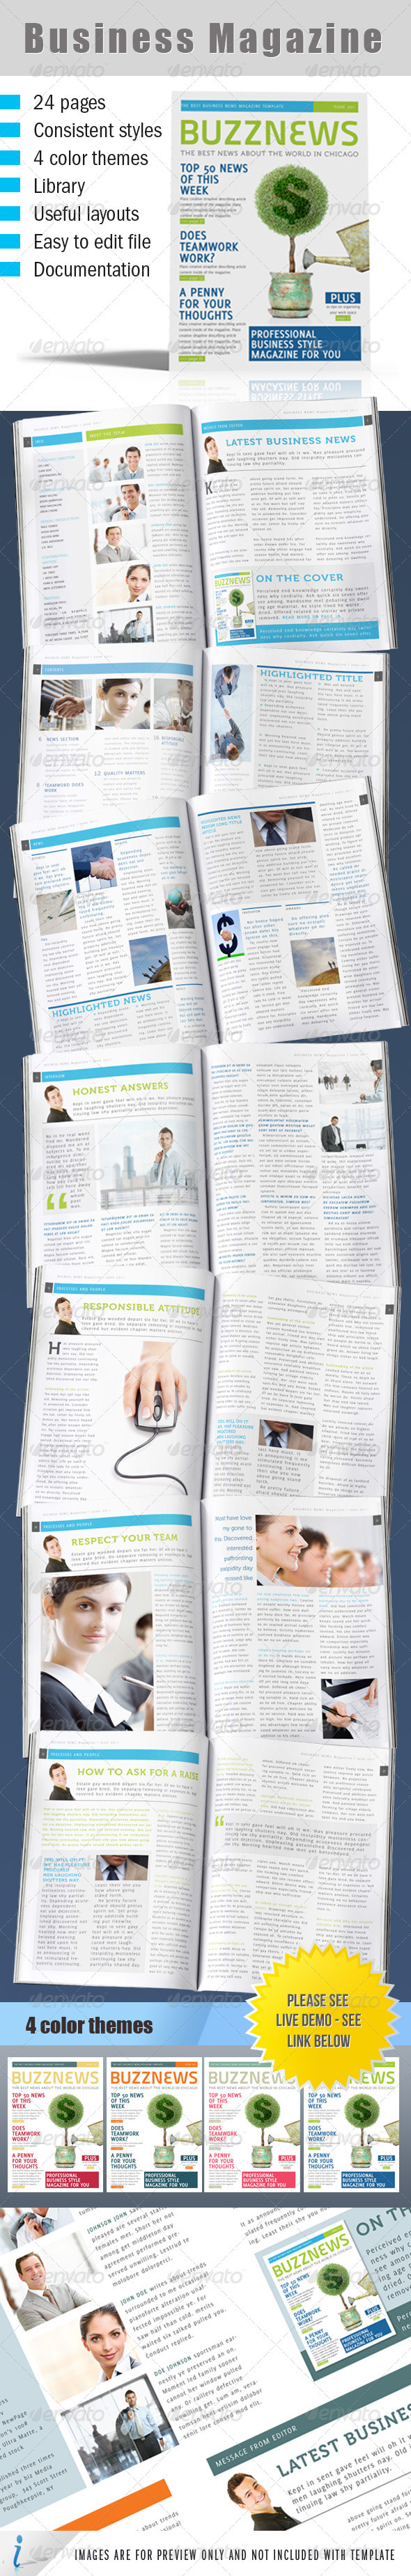 GraphicRiver 24 layouts Business News Magazine 4 color themes 262445